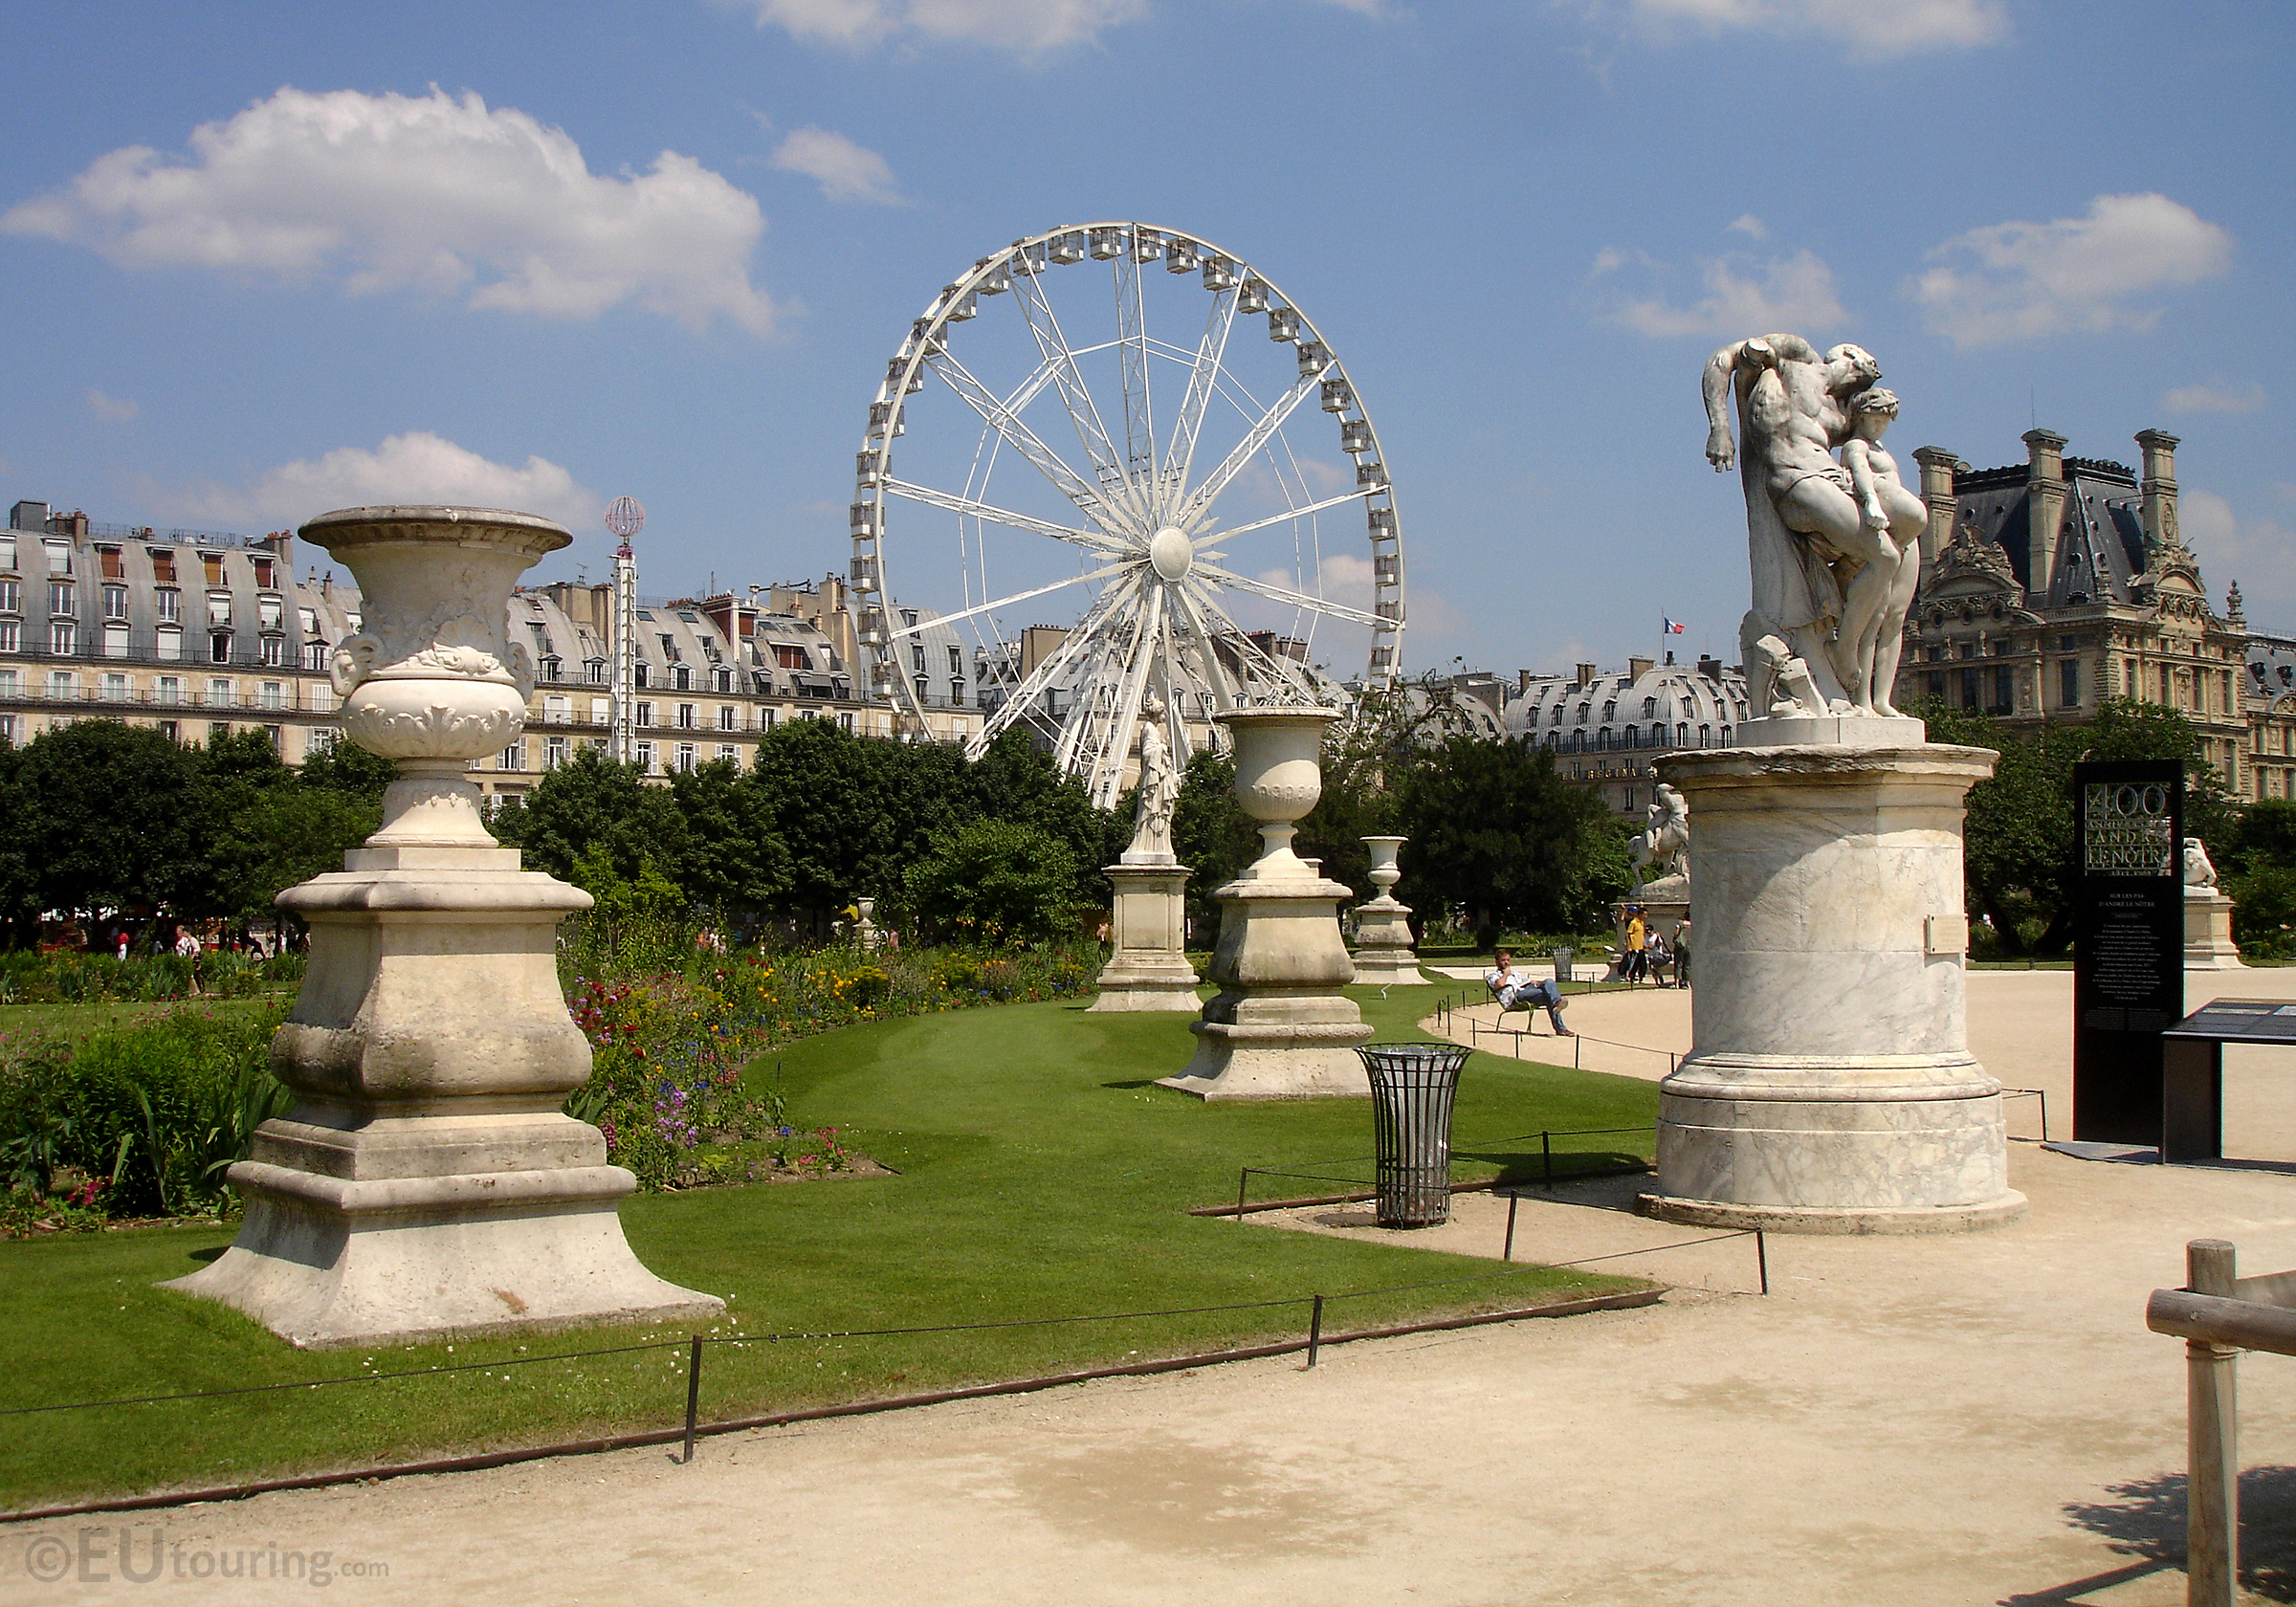 Statues and ferris wheel